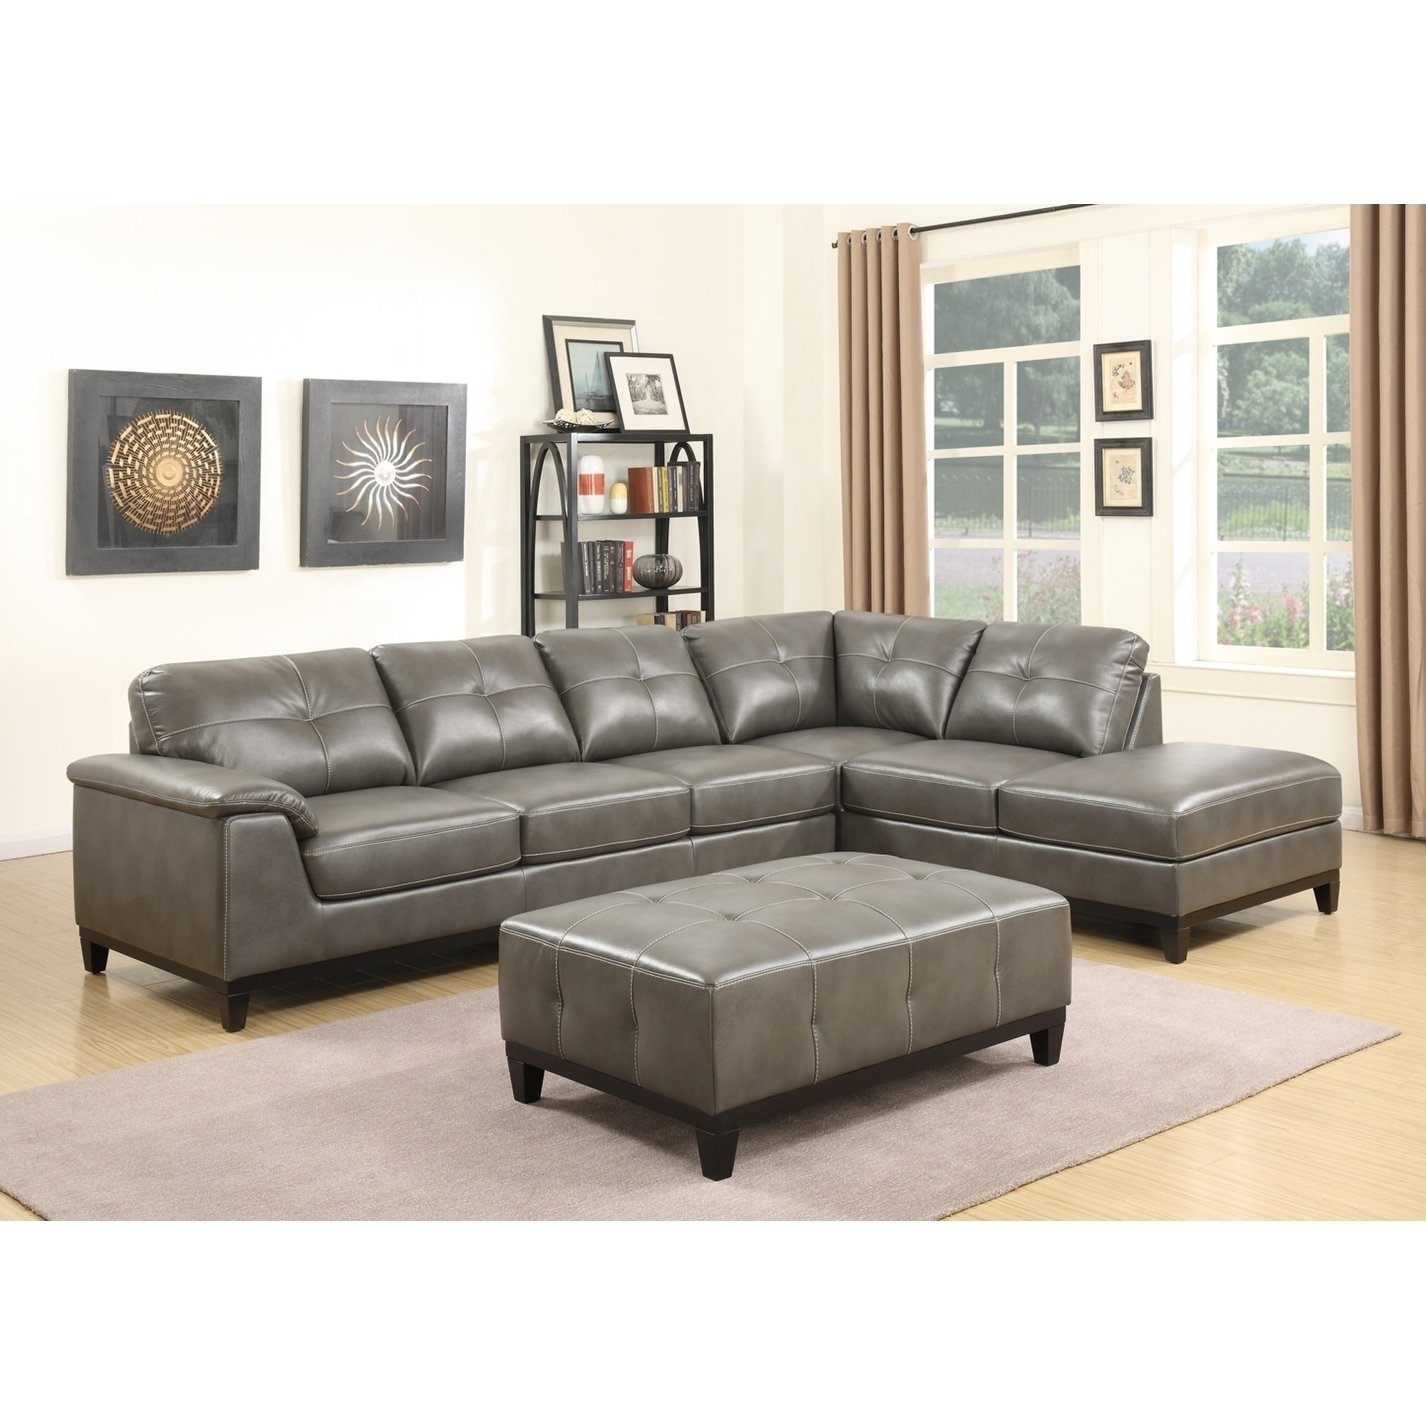 Shop Emerald Home Marquis 3 Piece Sectional With 6 Seats – Free Within Haven 3 Piece Sectionals (Image 23 of 25)